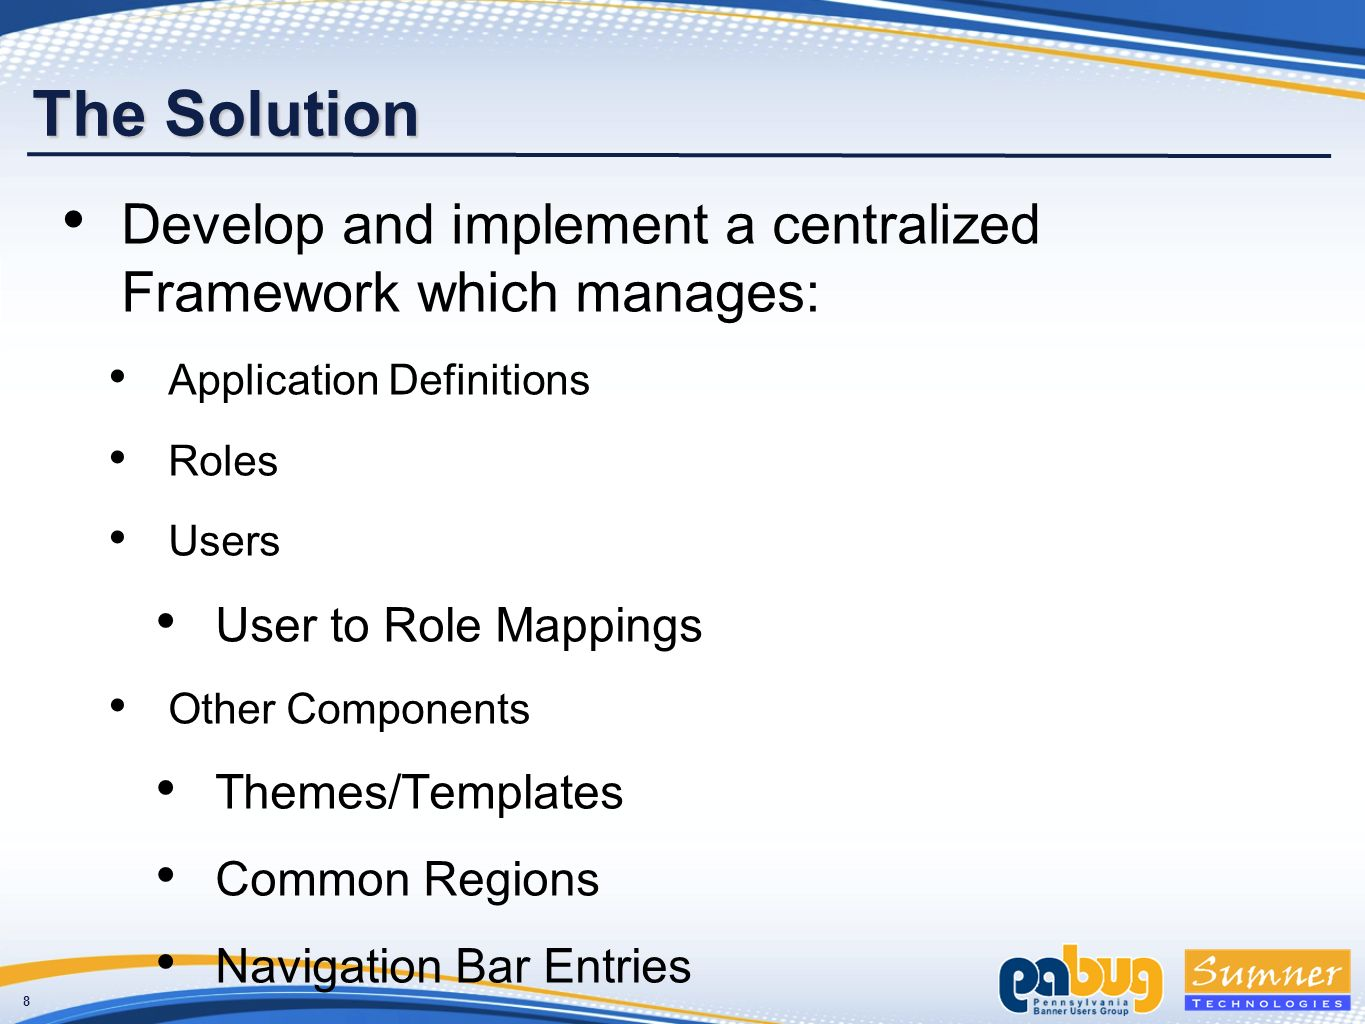 8 The Solution Develop and implement a centralized Framework which manages: Application Definitions Roles Users User to Role Mappings Other Components Themes/Templates Common Regions Navigation Bar Entries